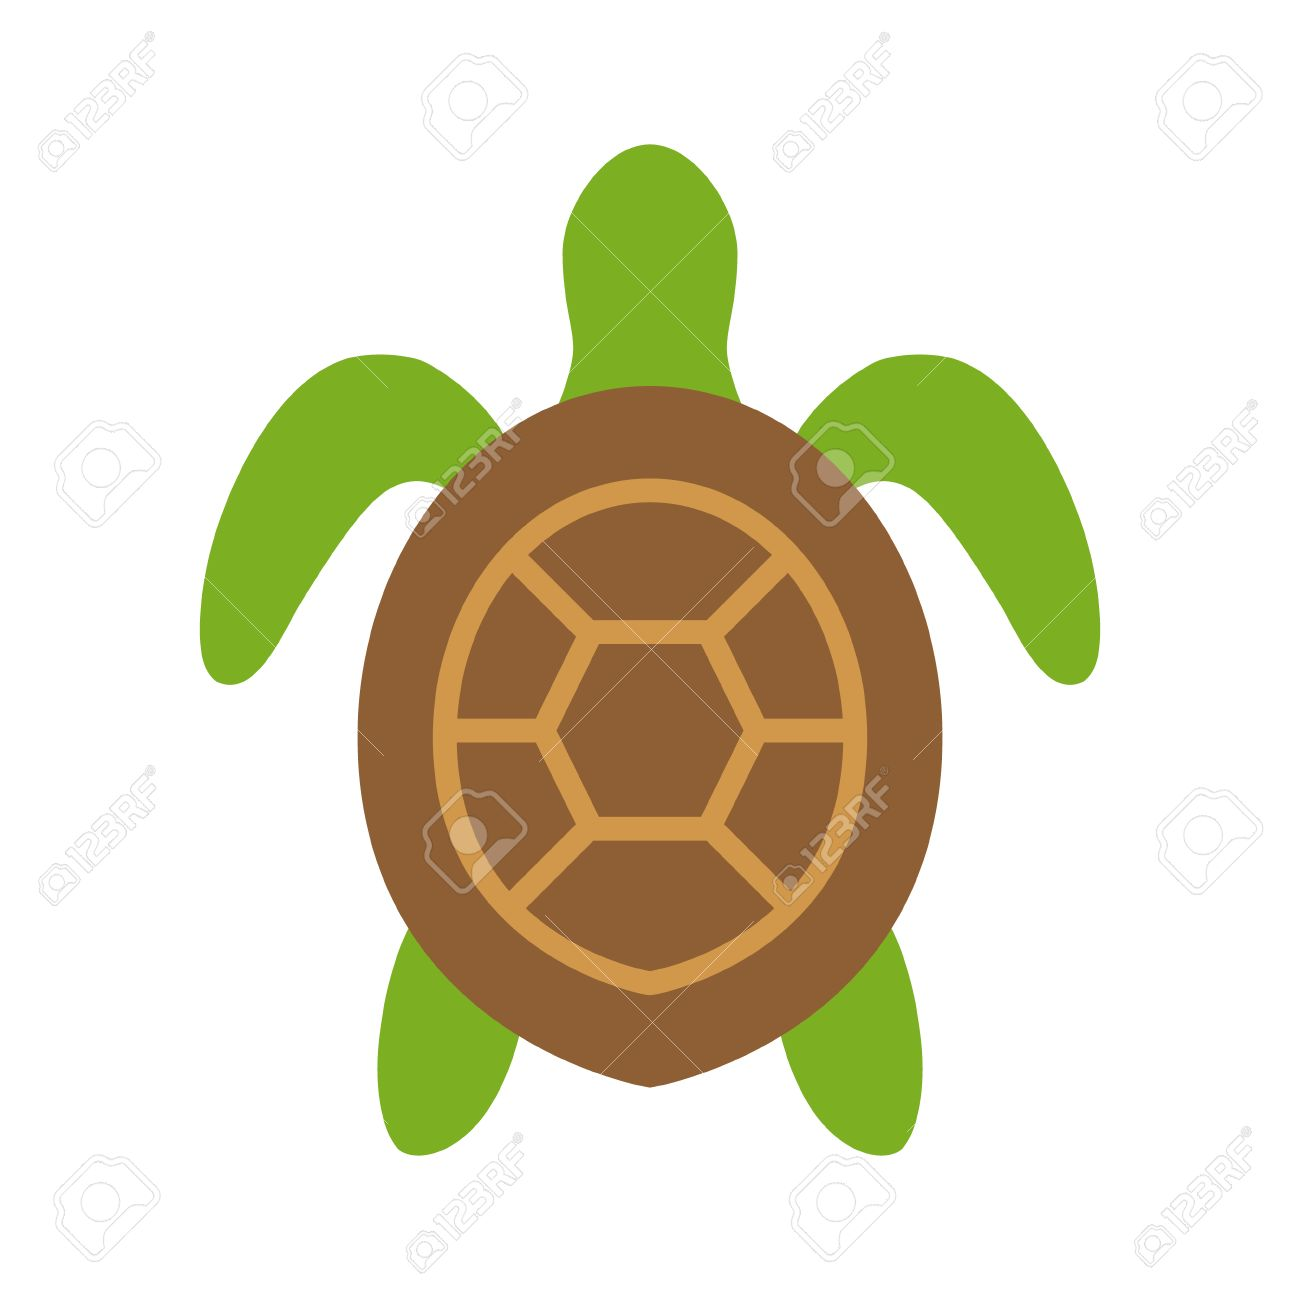 sea turtle marine turtle top view flat color icon for nature rh 123rf com Black and White Sea Turtle Sea Turtle Designs